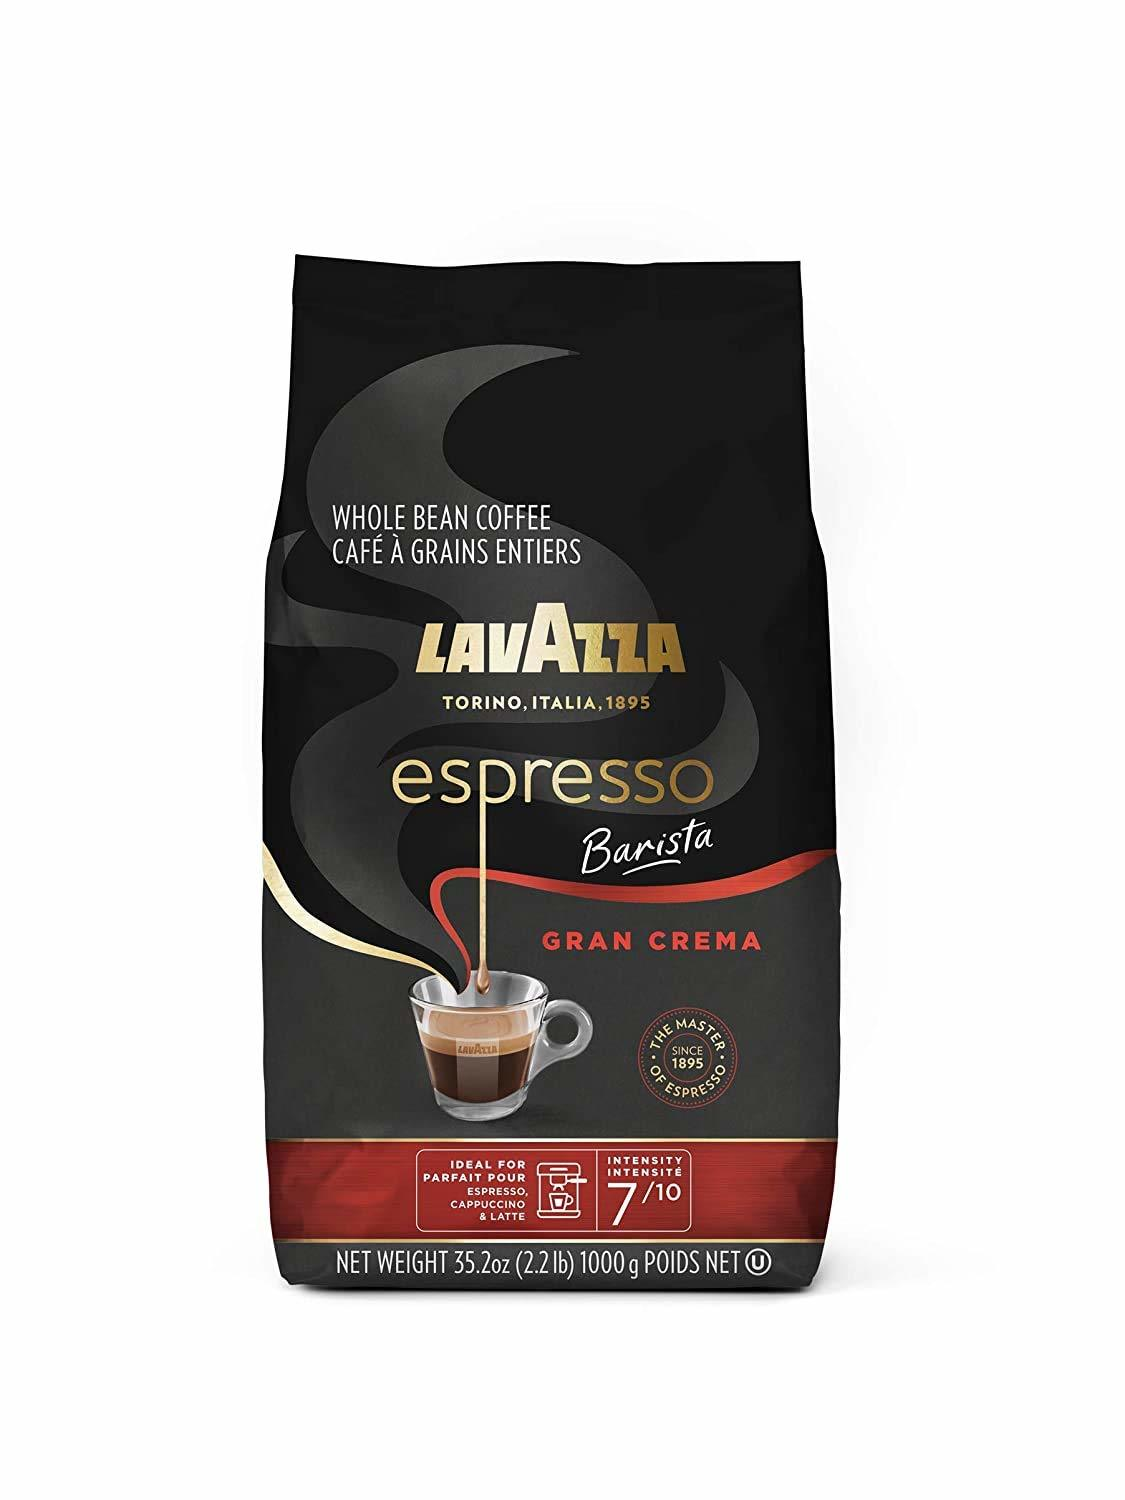 Lavazza Espresso Barista Gran Medium Espresso Roast Crema Whole Bean Coffee Blend,